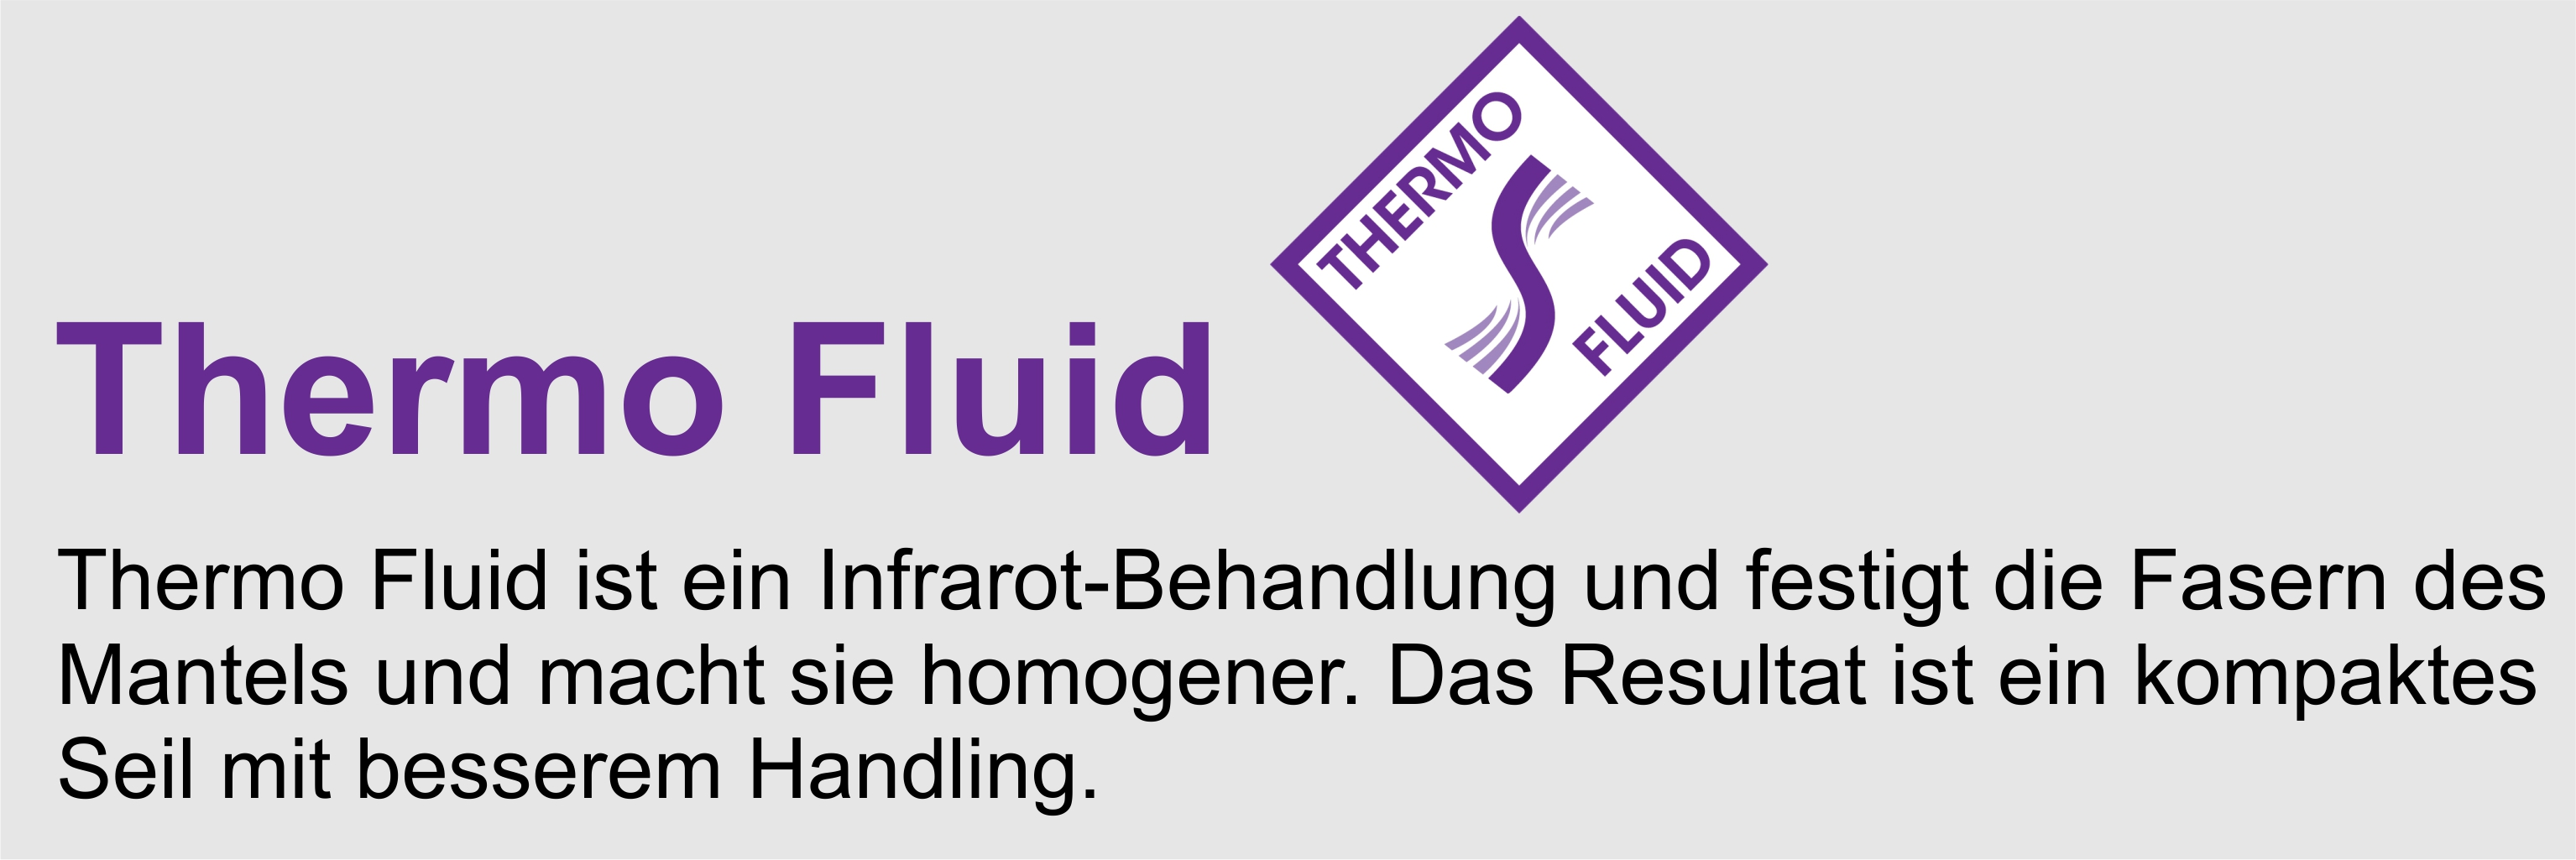 Beal Seile: Thermo Fluid